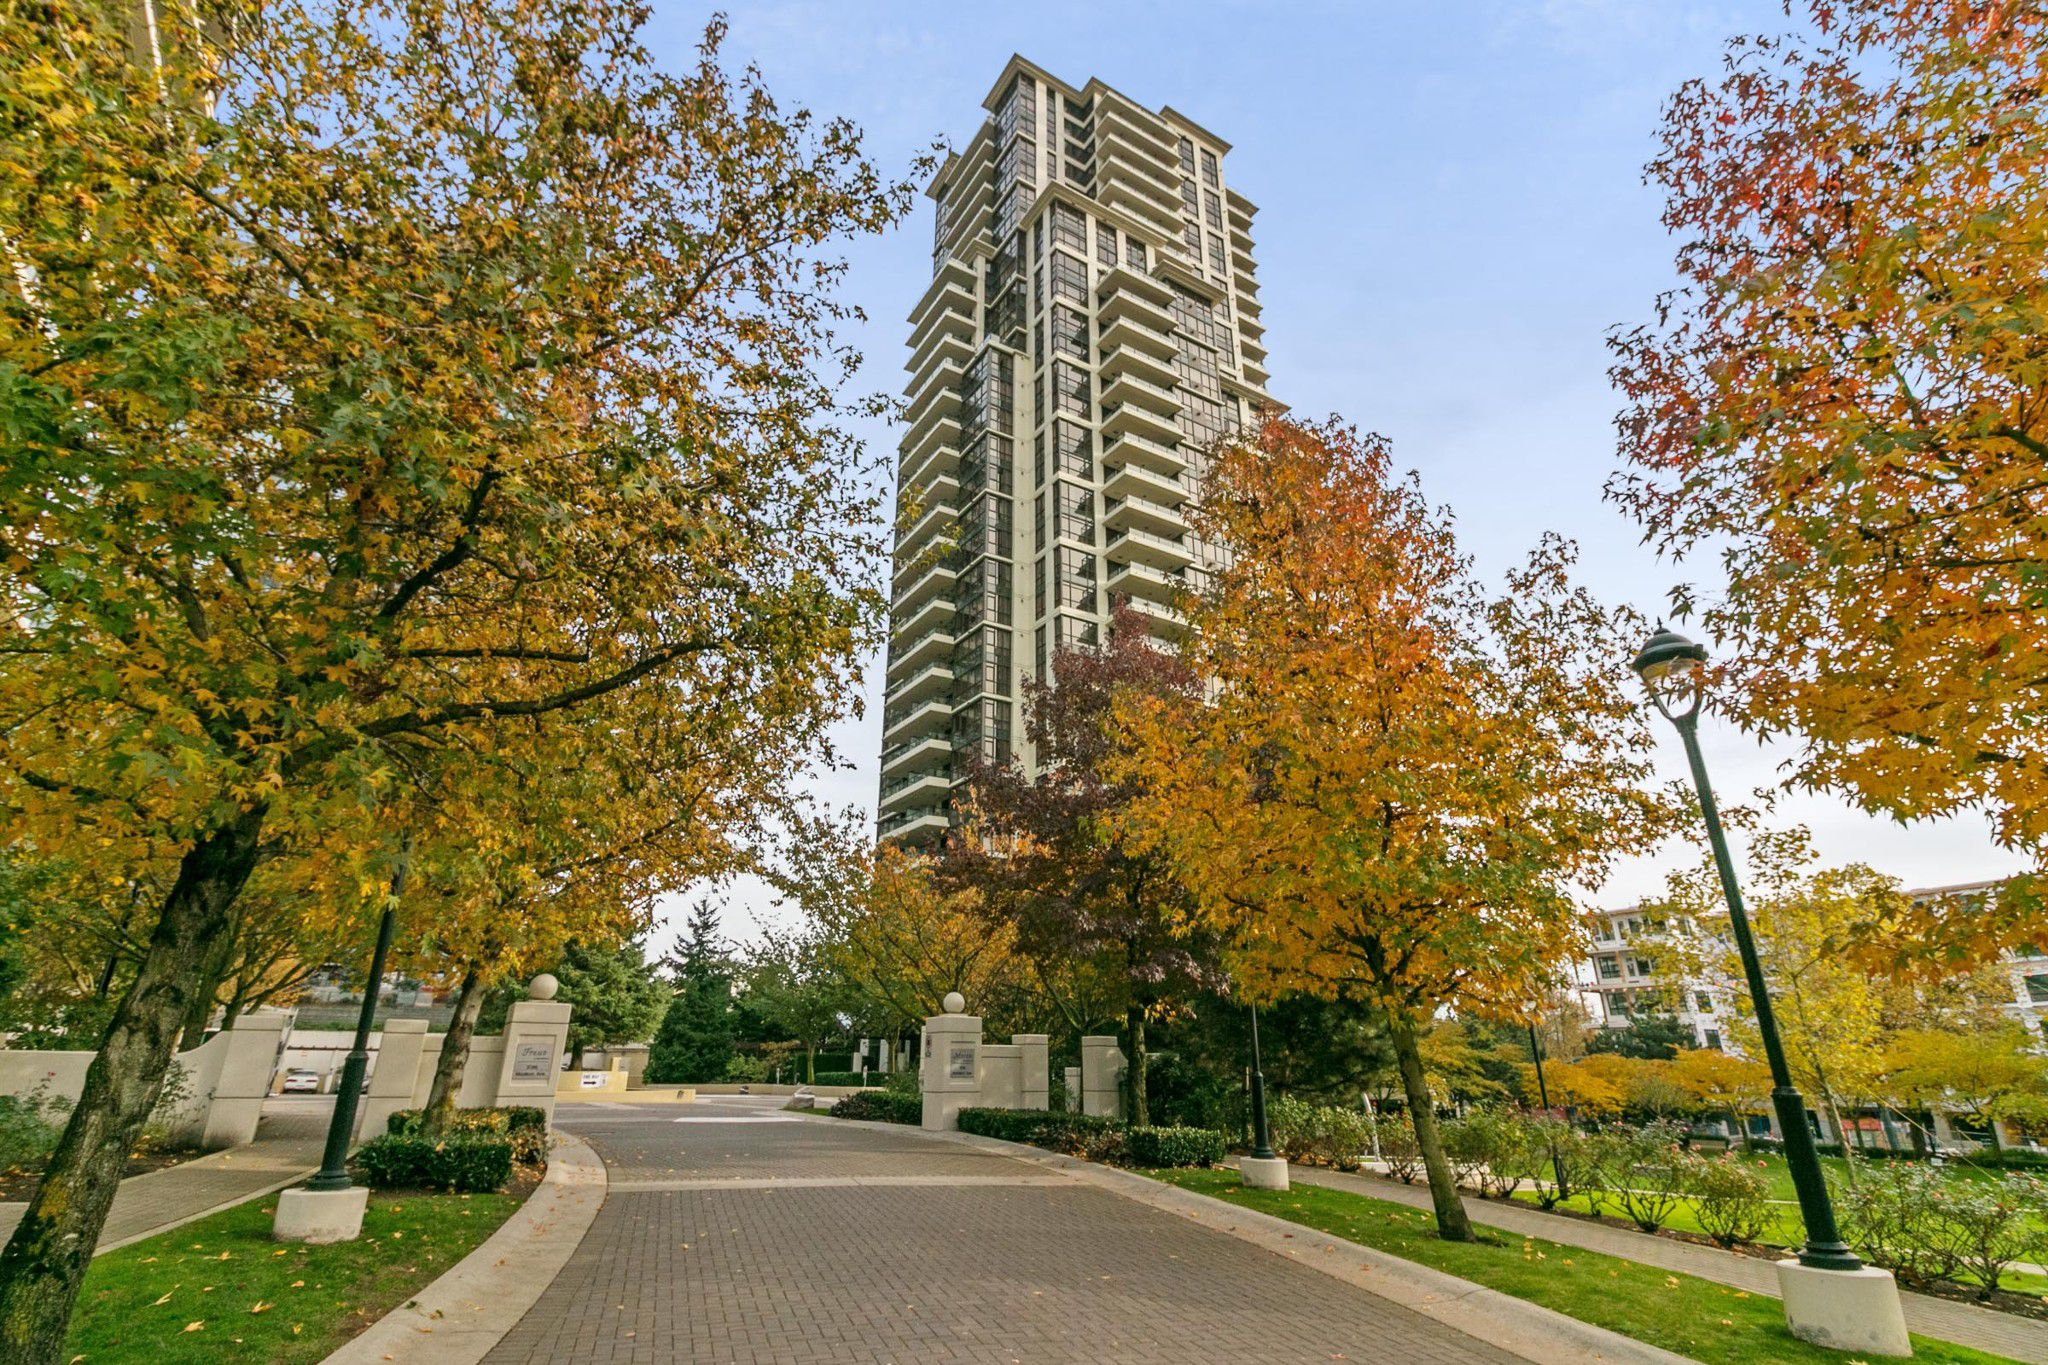 """Main Photo: 405 2138 MADISON Avenue in Burnaby: Brentwood Park Condo for sale in """"MOSAIC RENAISSANCE"""" (Burnaby North)  : MLS®# R2222436"""